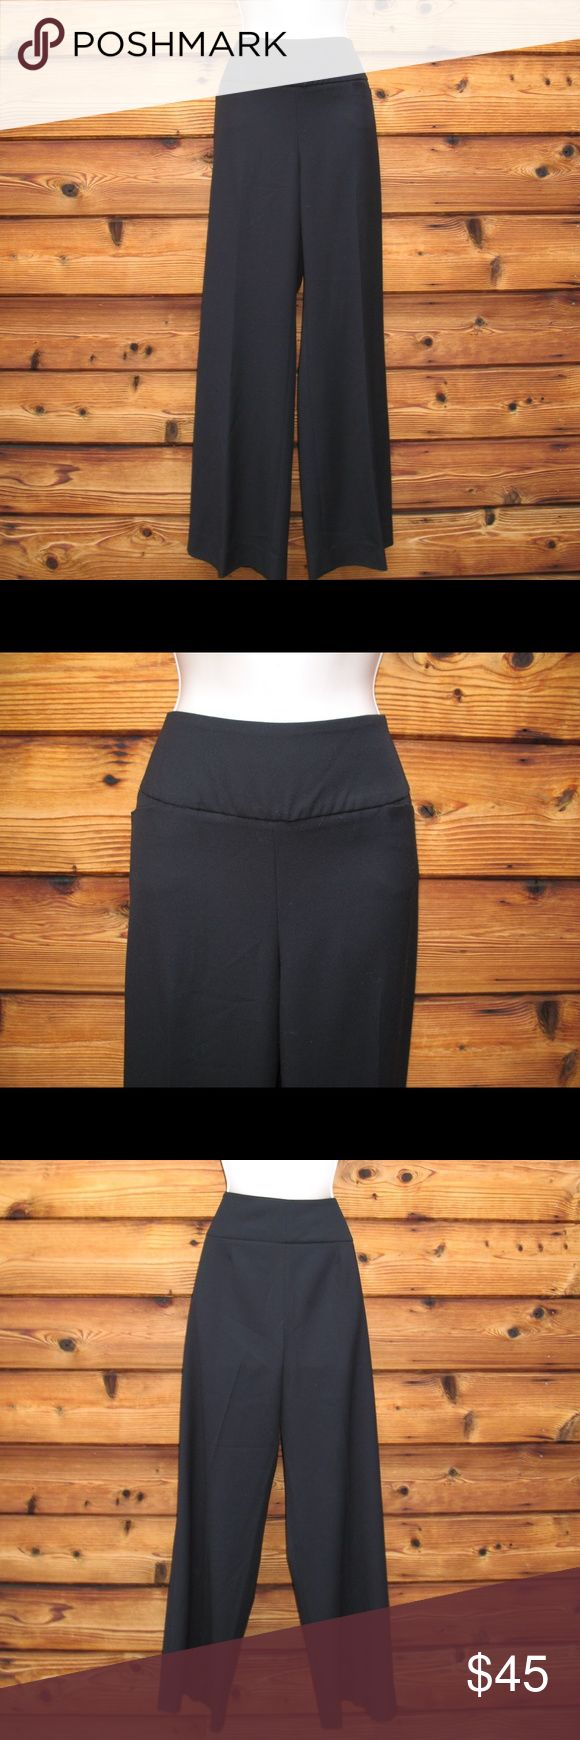 """Vince Camuto Wide Leg Wide Waistband Pants Vince Camuto Wide Leg Wide Waistband Pants  *Very good condition.  Details: Vince Camuto Size: 8 Color: Black Heavy textured fabric 3 inch waistband Side zip closure Two front open pockets Wide leg Polyester/Rayon/Spandex  Measurements: Waist: 32"""" Hips: 42"""" Front Rise: 11"""" Inseam: 32.5 Leg Opening: 24"""" Vince Camuto Pants Wide Leg"""